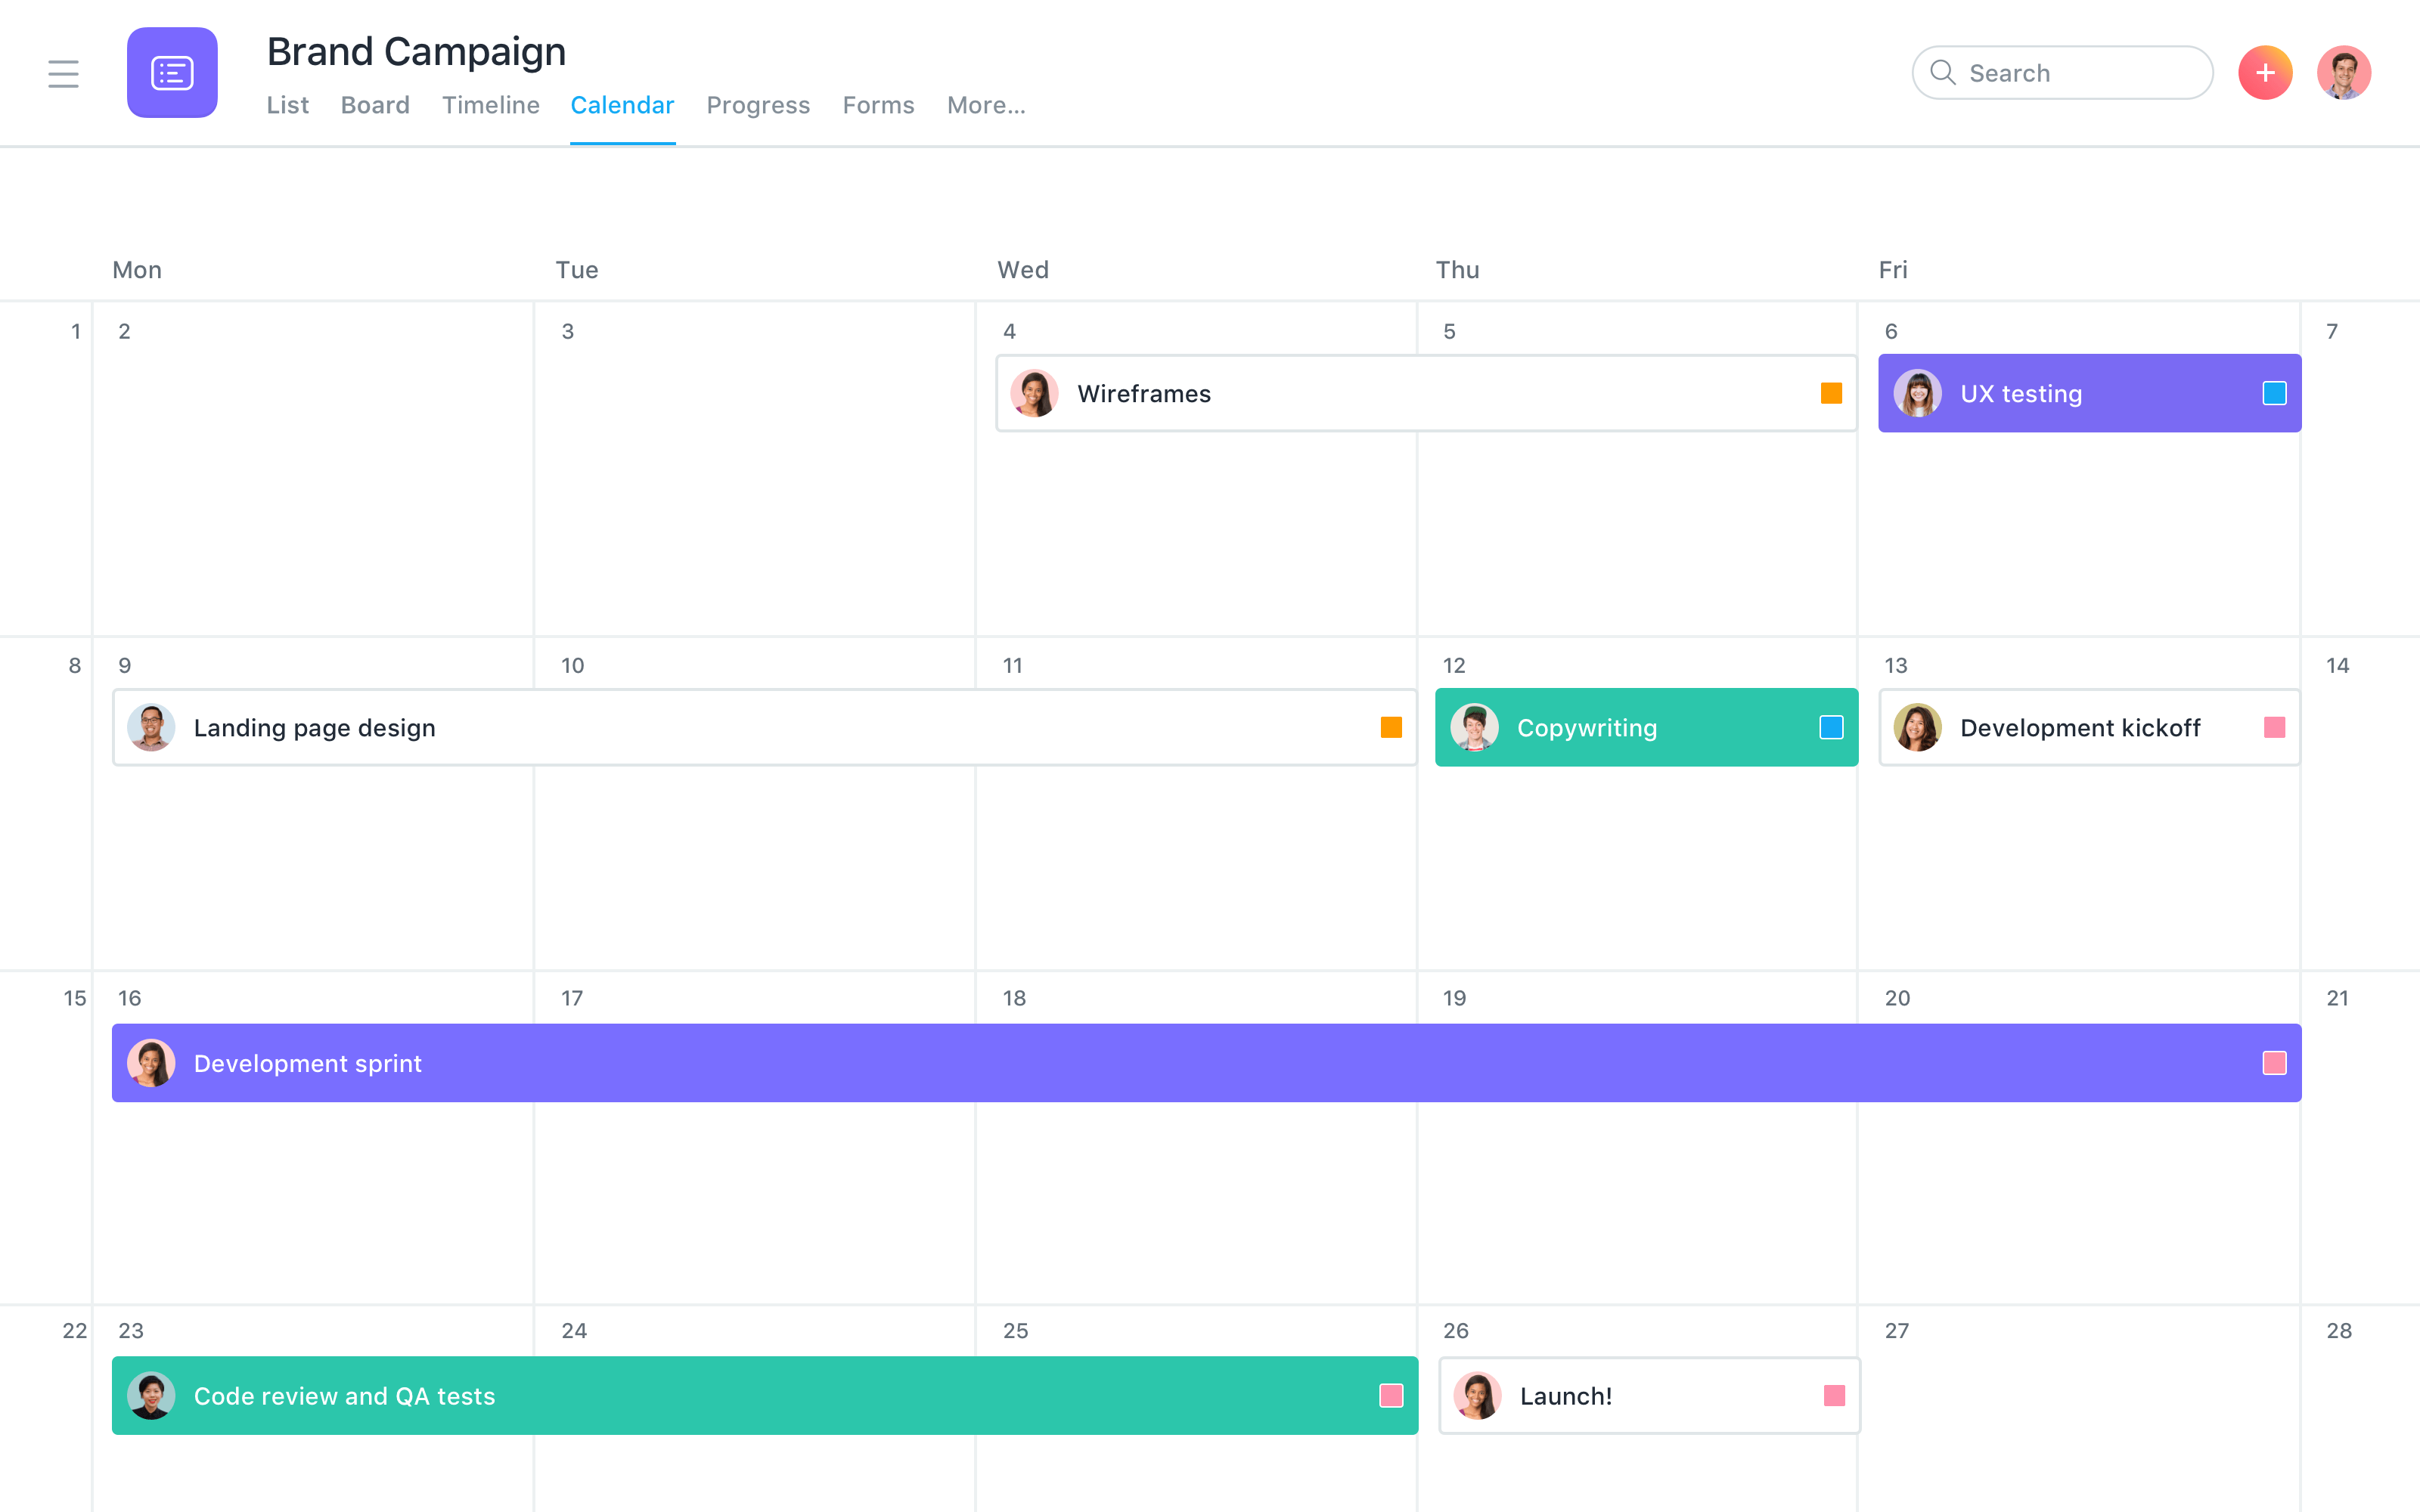 Project plan visual in a calendar